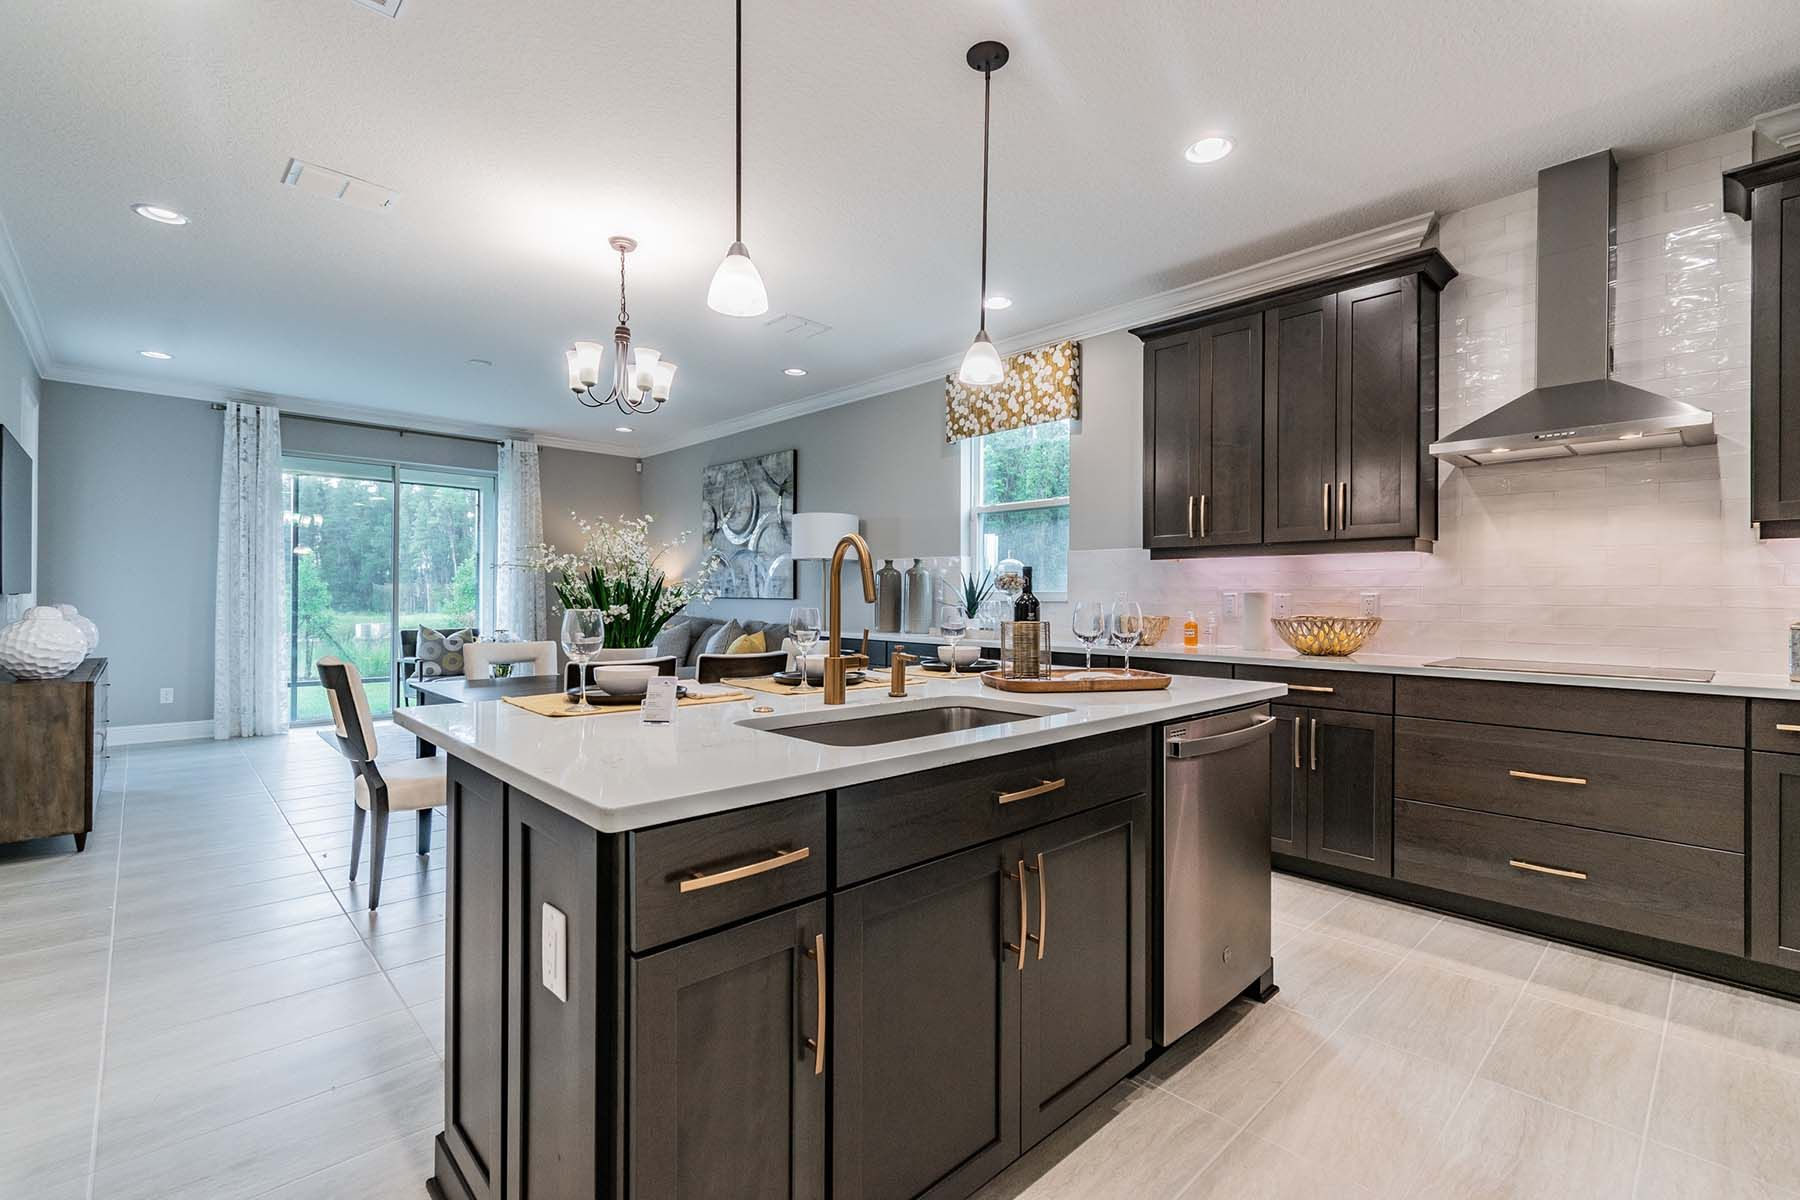 Kitchen featured in the Willow By M/I Homes in Tampa-St. Petersburg, FL